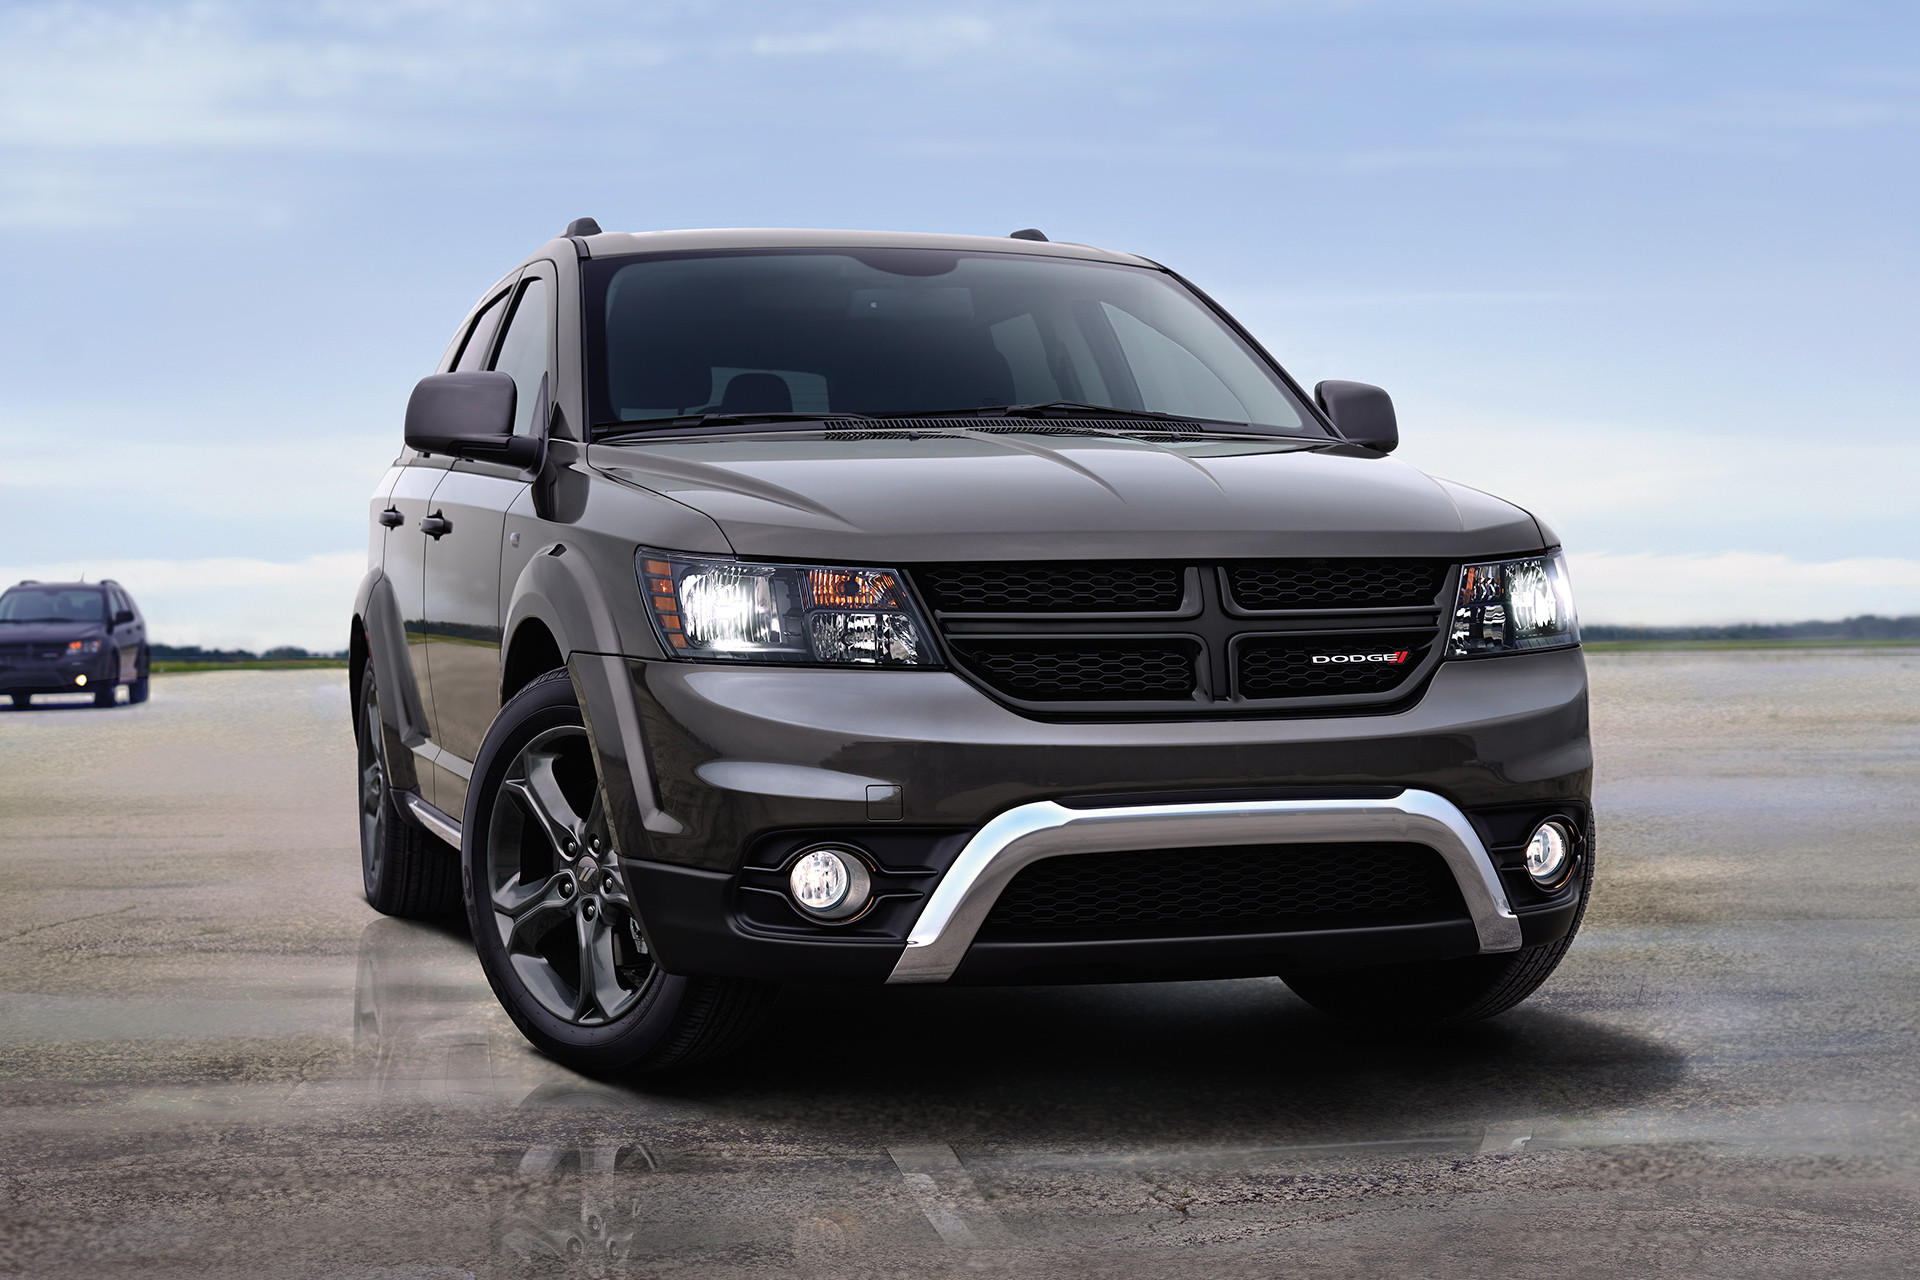 2020 Dodge Journey - Lethbridge Dodge